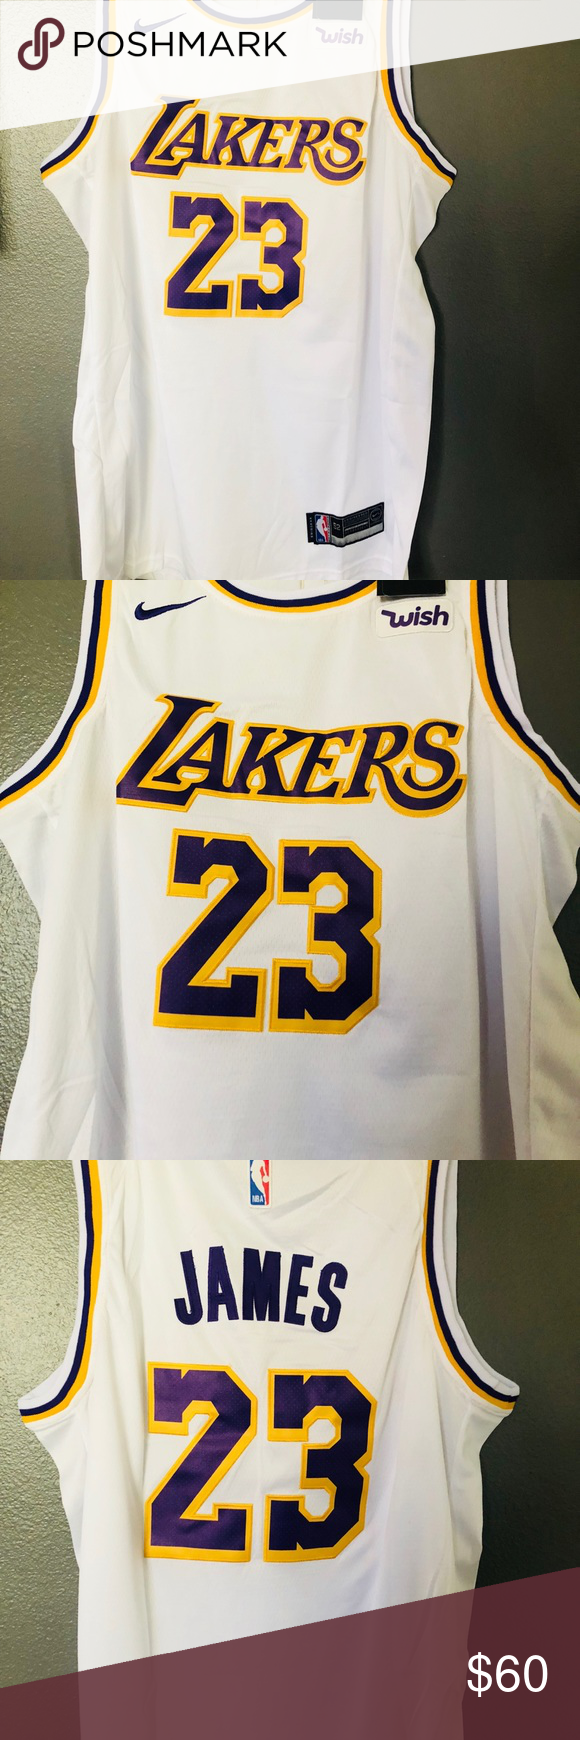 half off 68a55 e38a0 NWT Lebron James Laker Jersey White 🔥🔥 Excellent quality ...